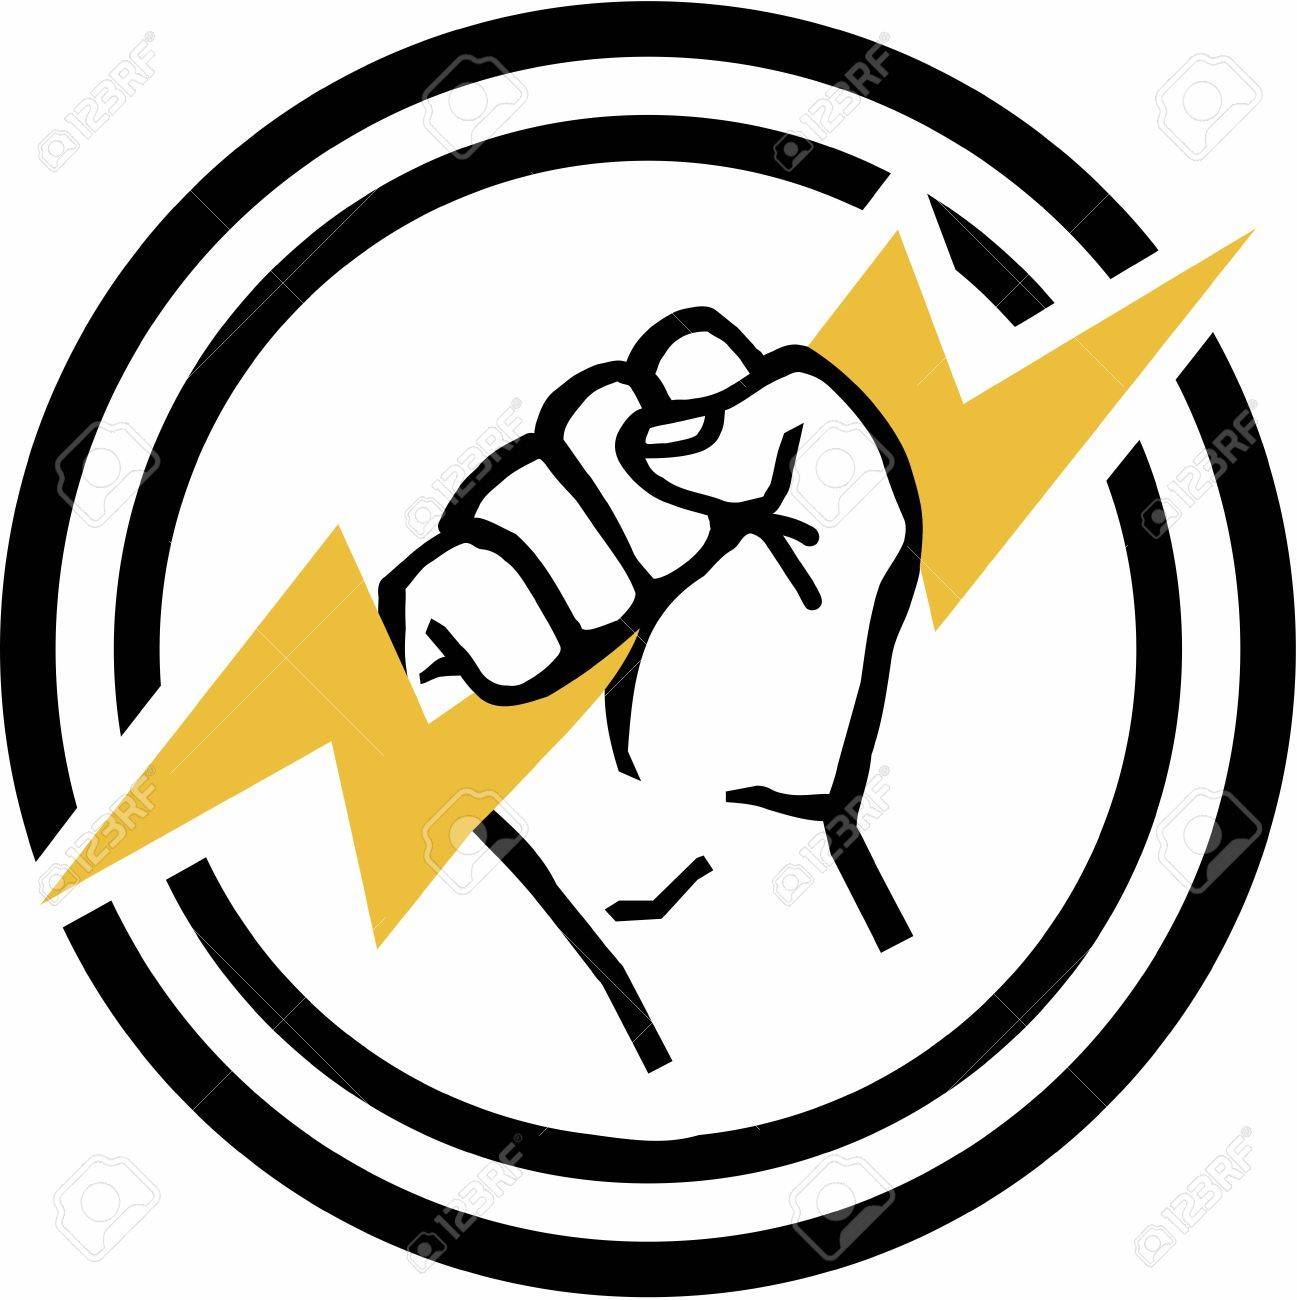 Electrician Electrical Hand Royalty Free Cliparts Vectors And